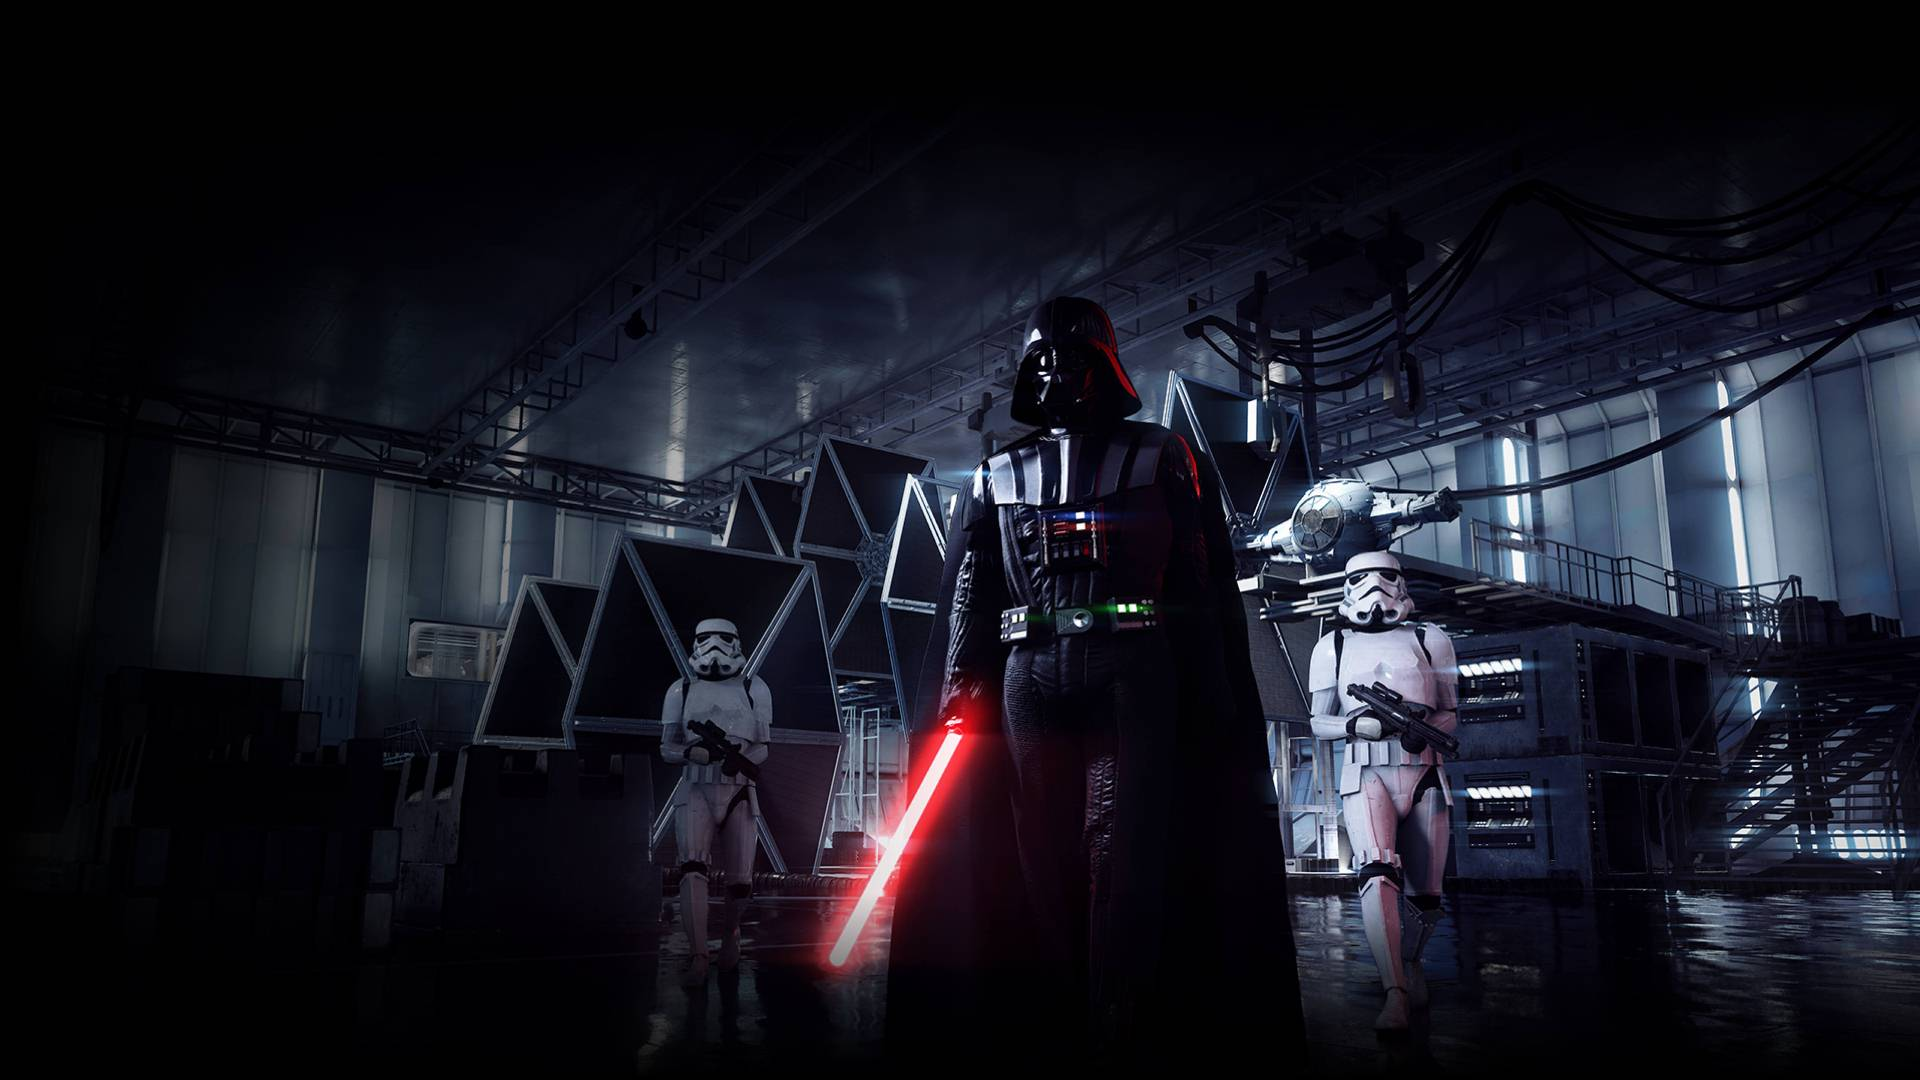 Death Star Backgrounds Posted By Michelle Mercado